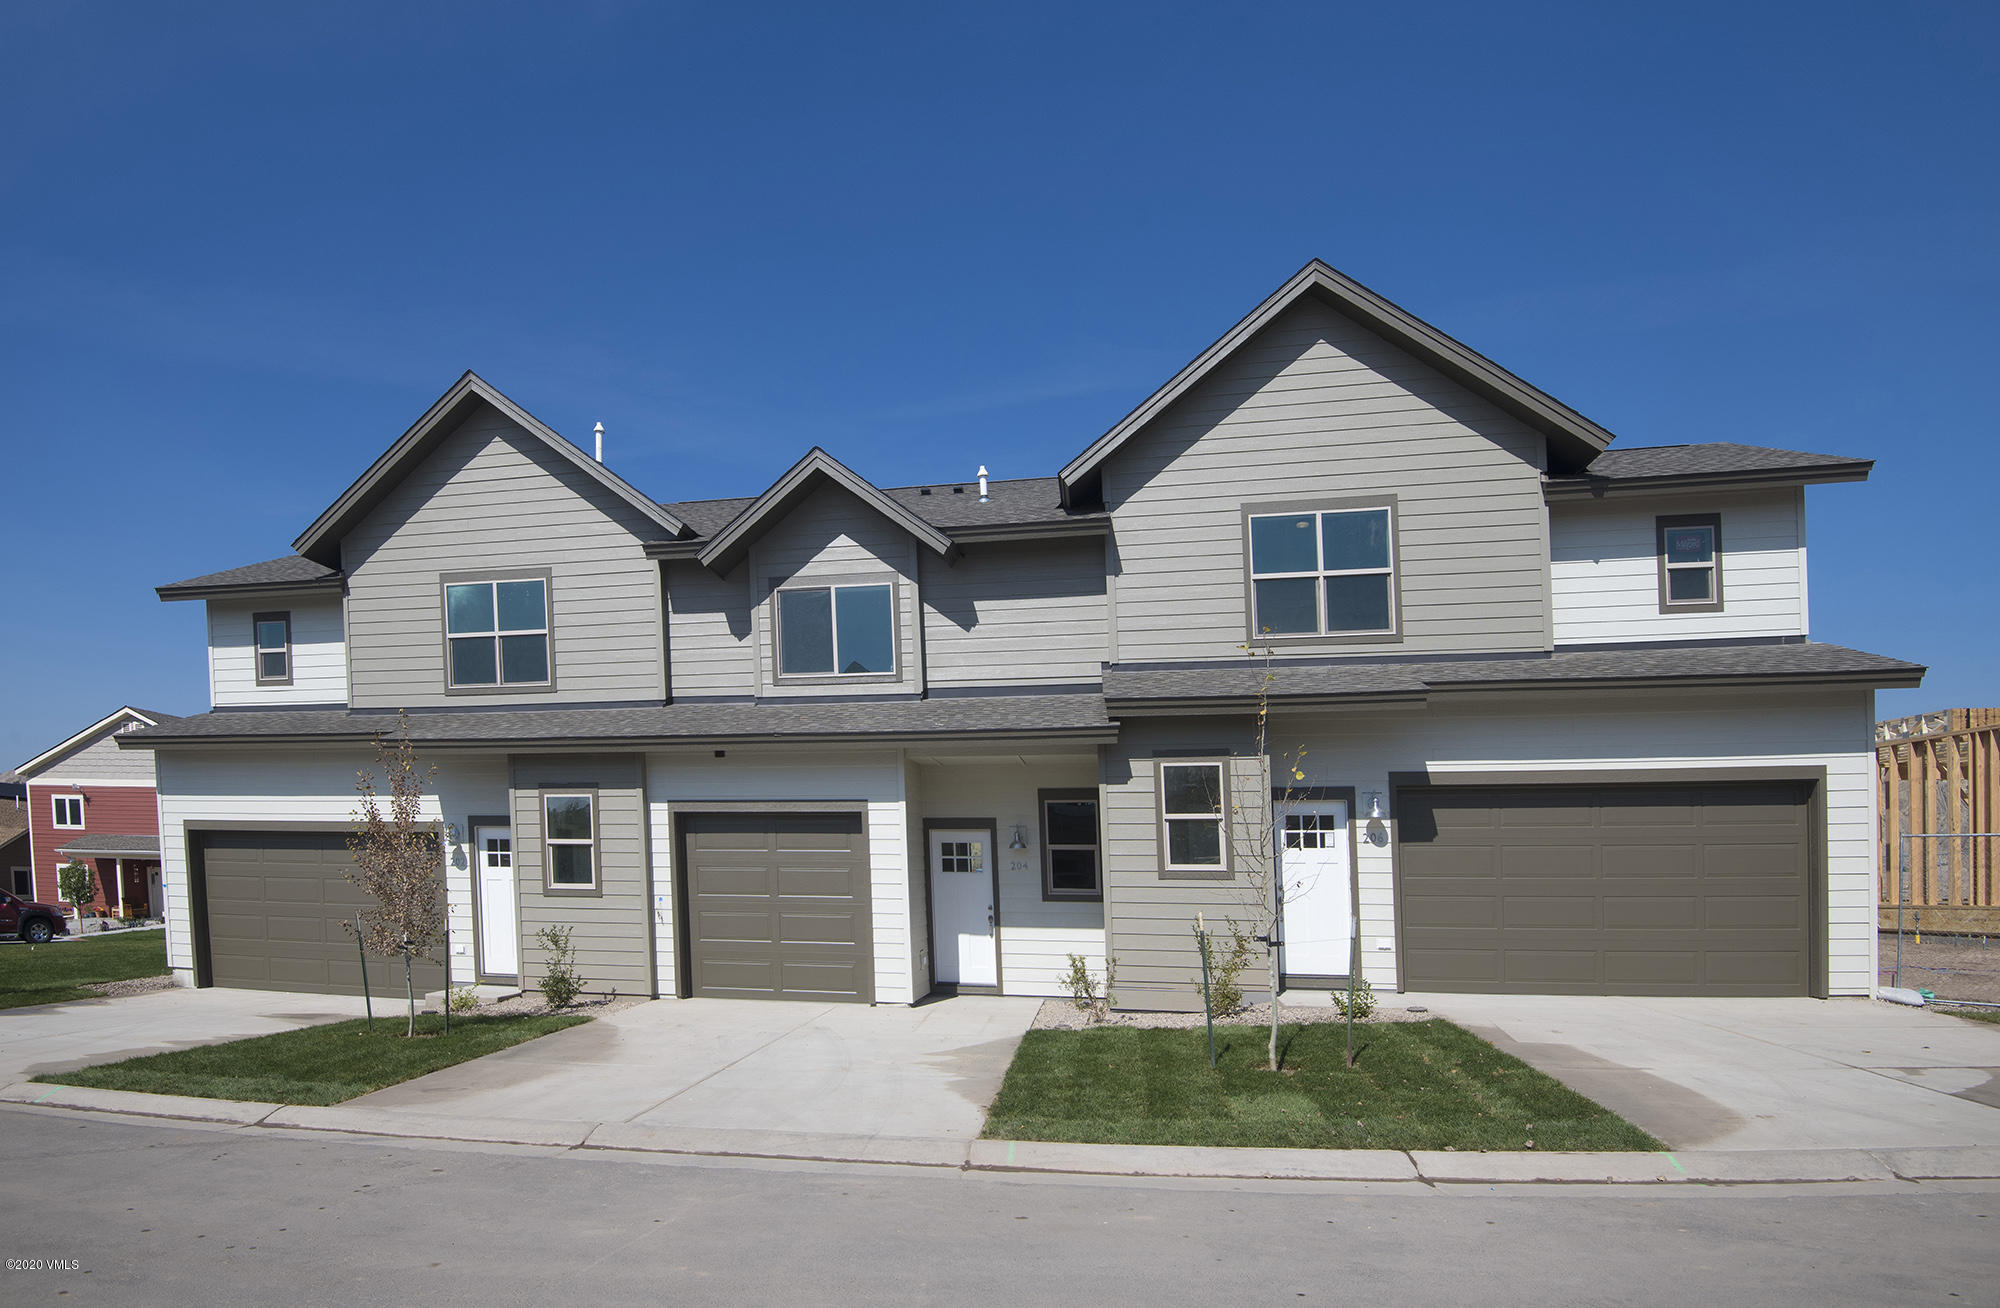 BRAND NEW TOWNHOME! Now Under Construction! Well-designed, site-built, 3 bedroom, 2.5 bath home with an attached 2-car garage. Incredibly convenient location close to Costco, Gypsum Rec Ctr, and Eagle County Airport. Only minutes to world-class recreation of all types. Standard finishes include vaulted ceilings, LVT flooring, quartz countertops, kitchen pantry, & stainless steel appliances. Laundry room conveniently located on the bedroom level. This is an end unit & offers plenty of light.